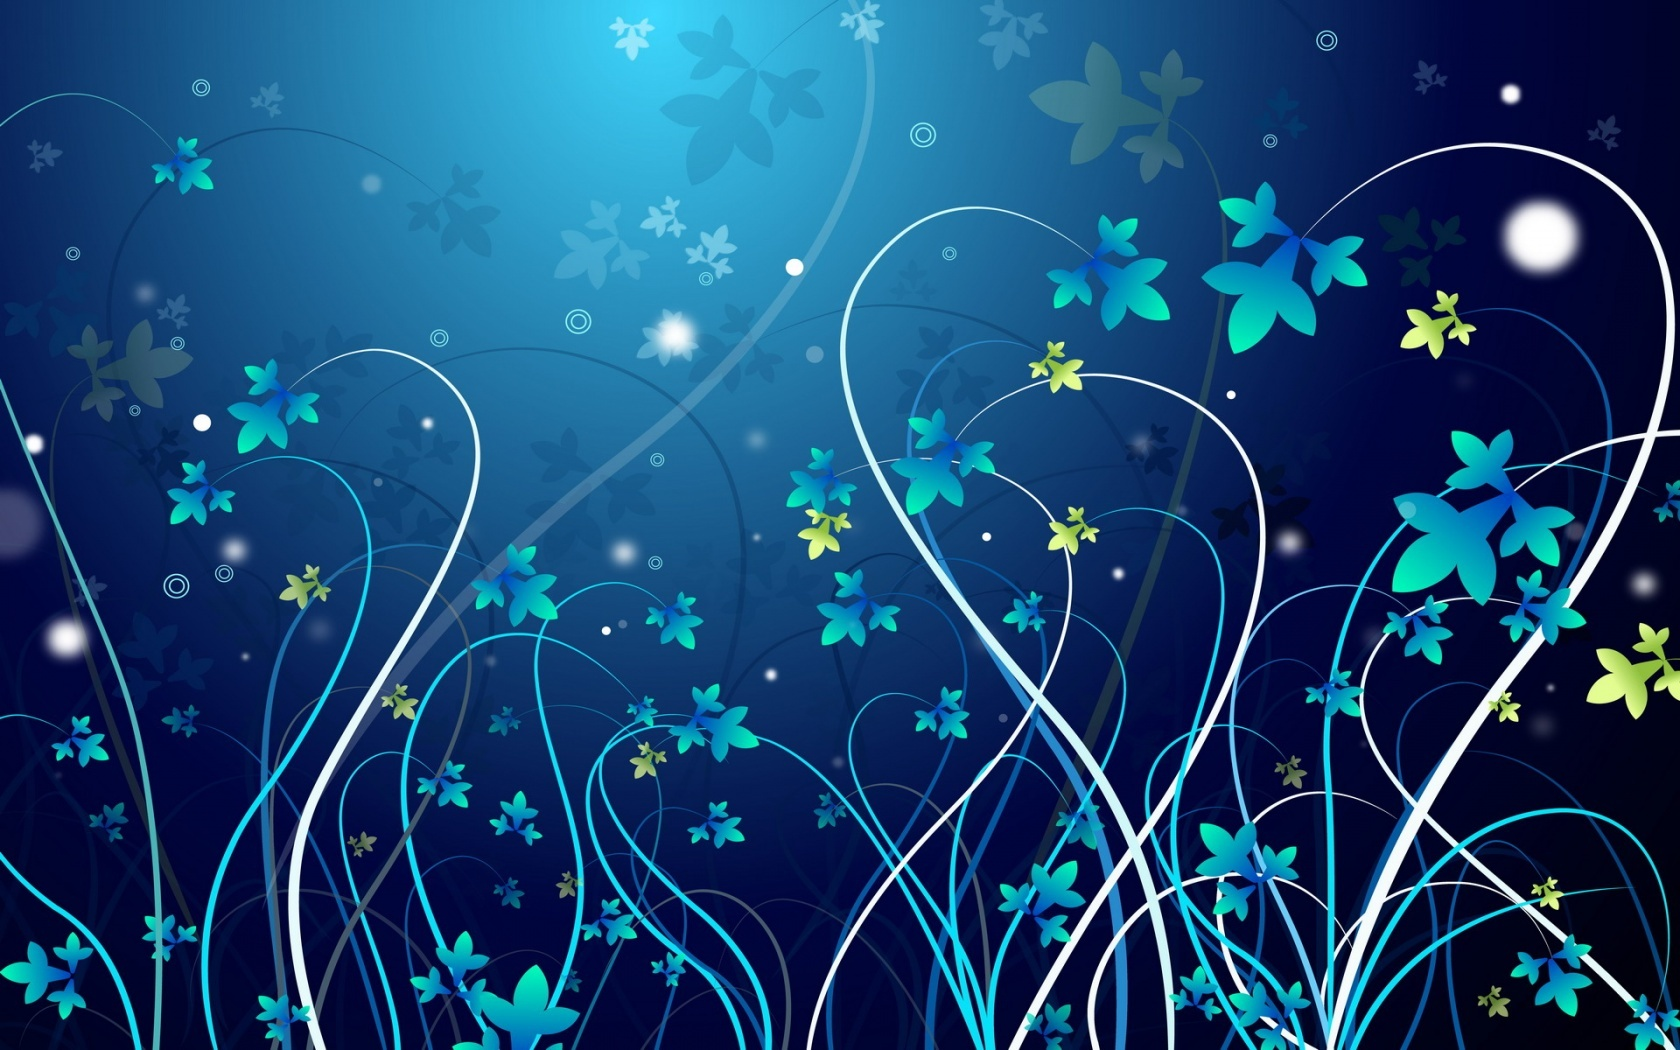 abstract wallpapers hd winter flower